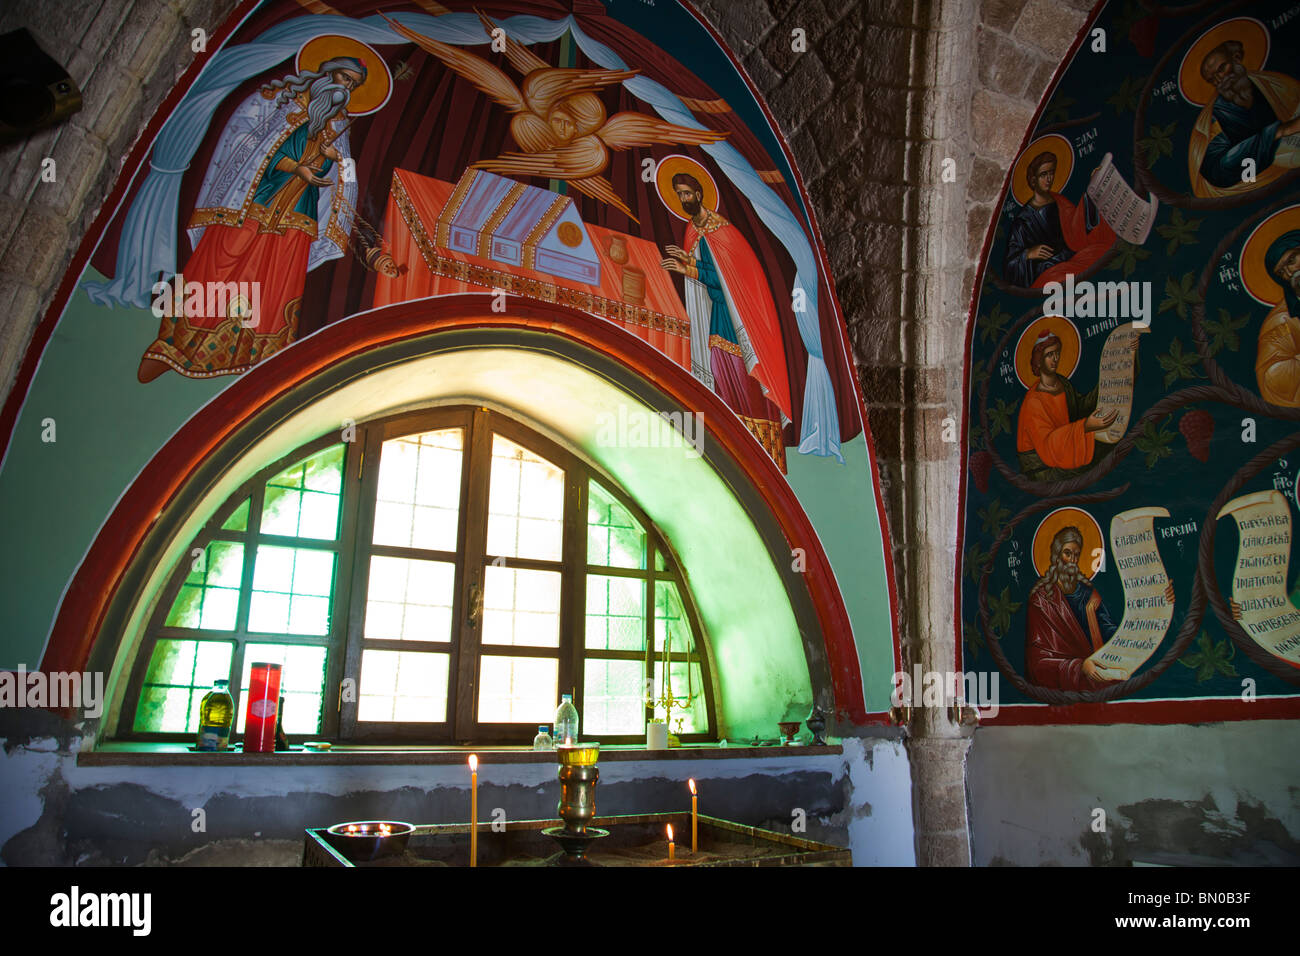 Skiadi monastery interior with murals Greek Orthodox iconography - Stock Image